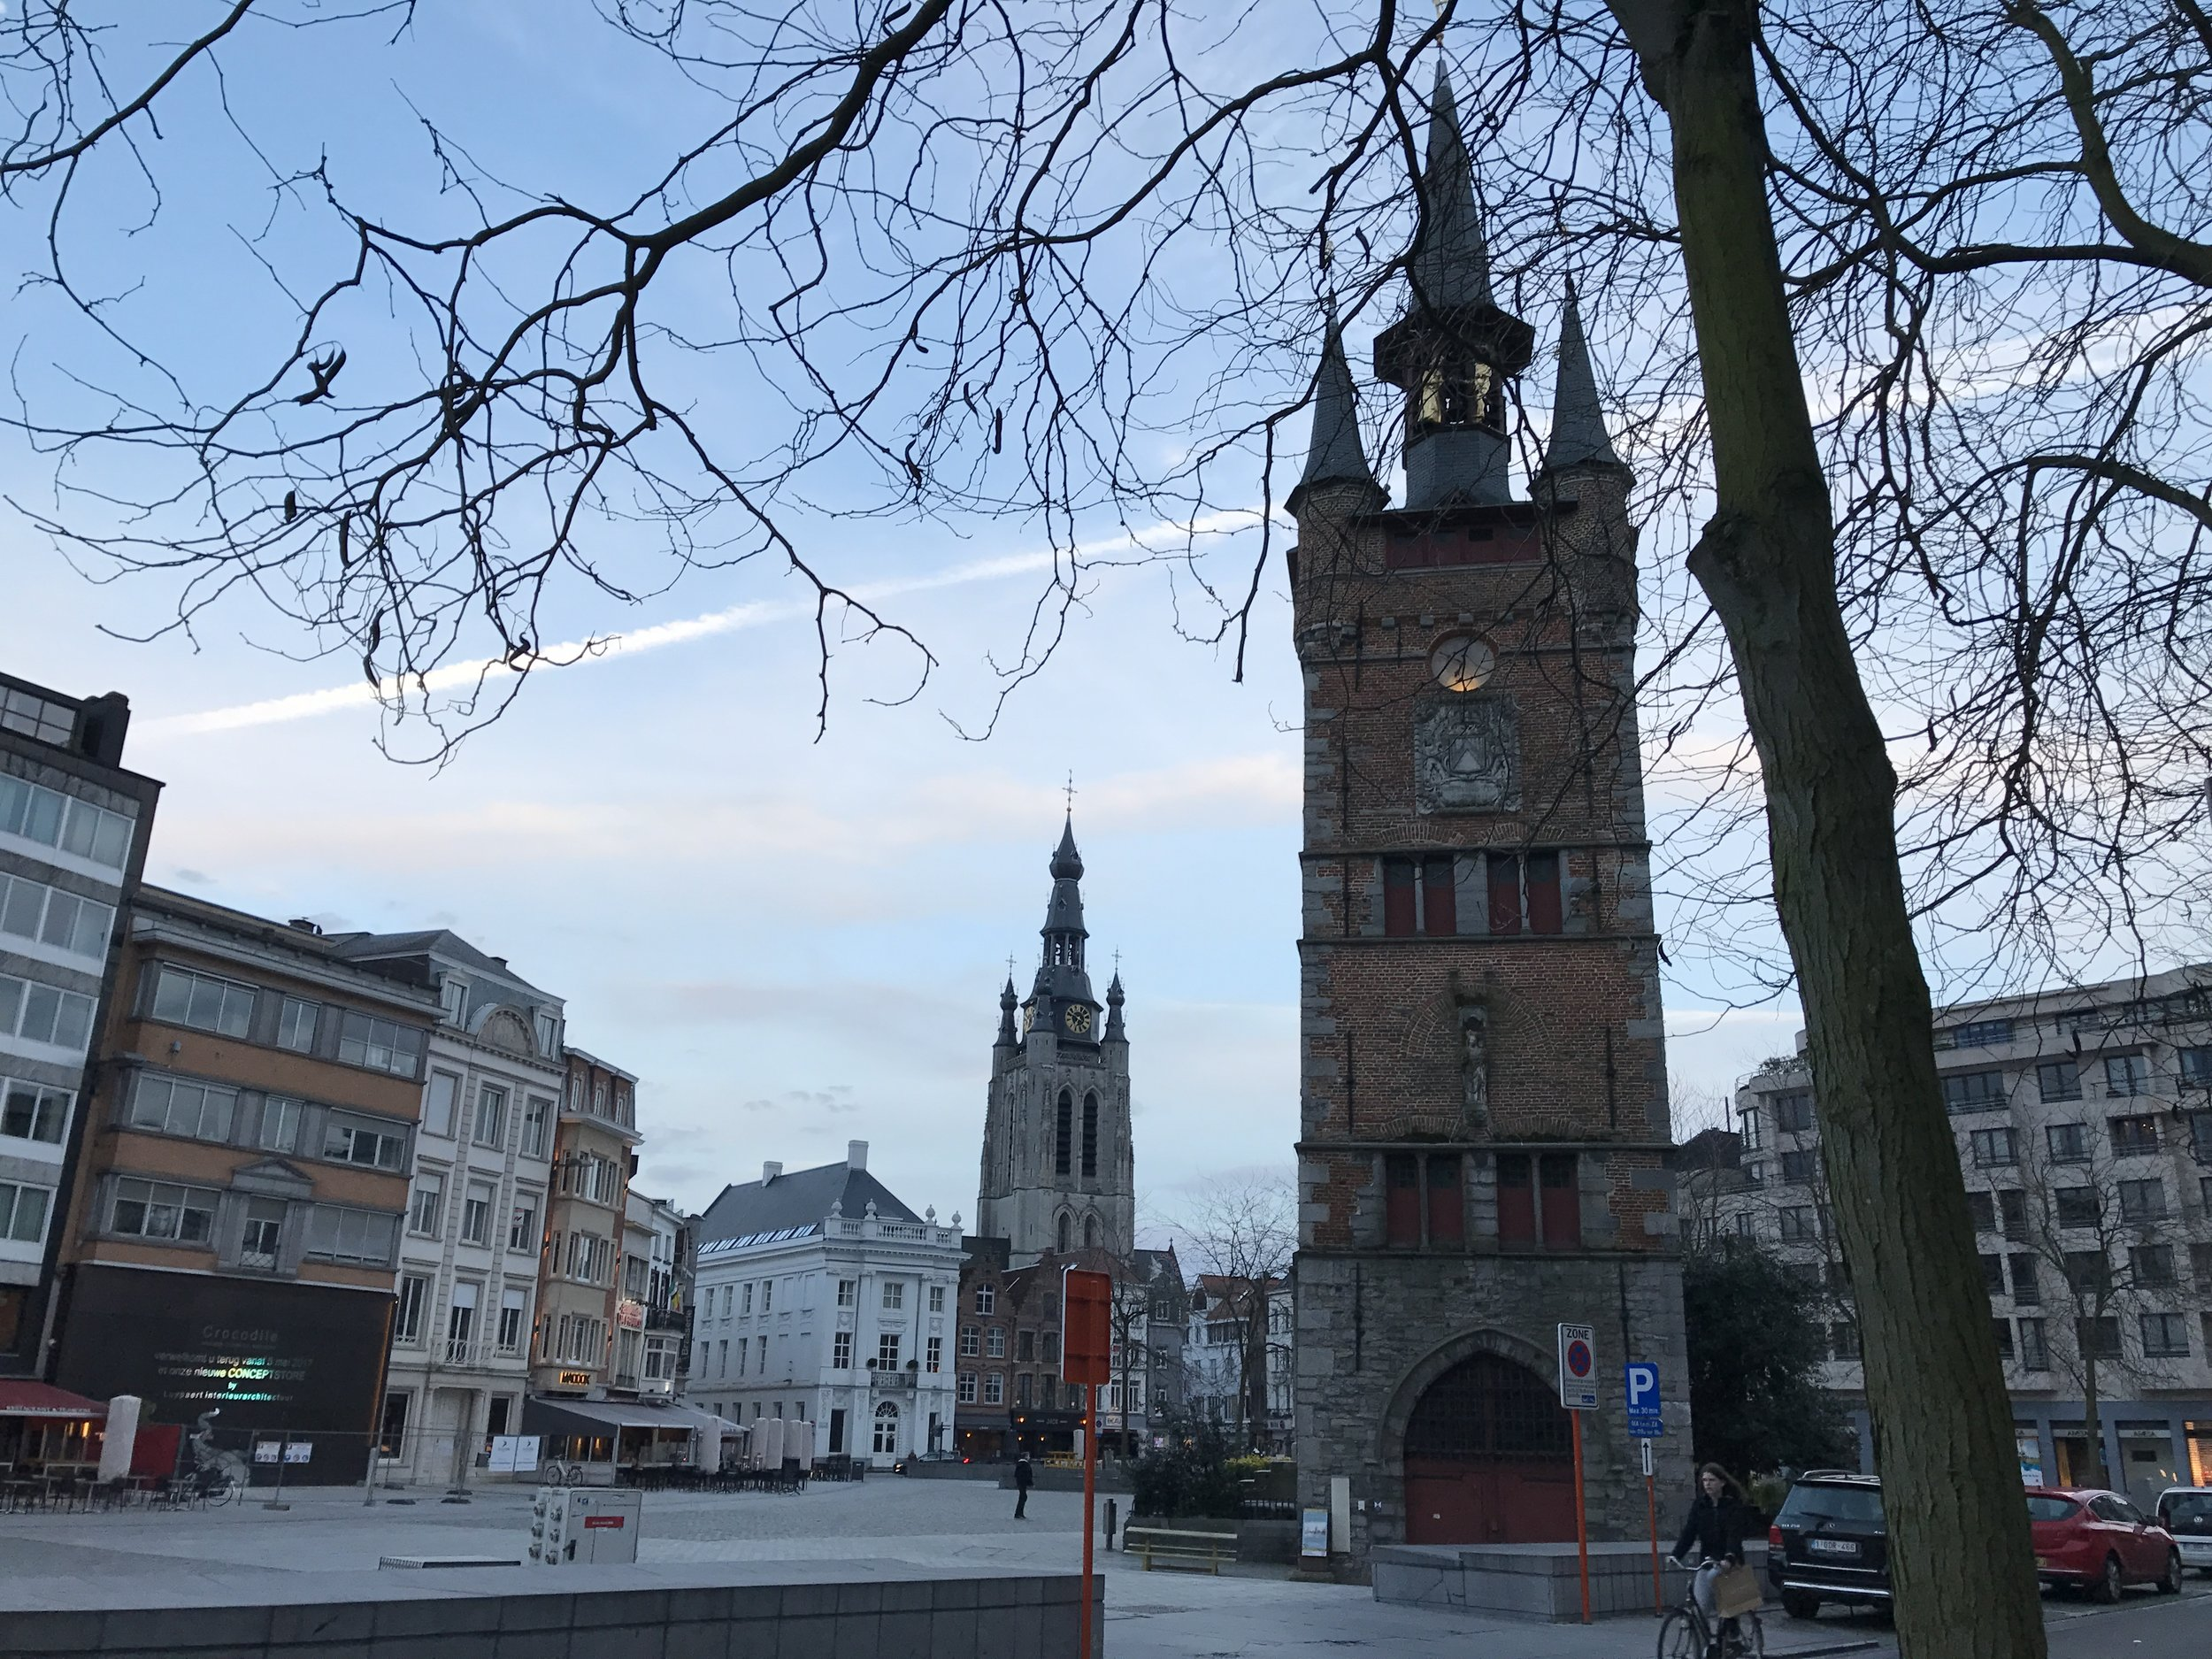 The clock tower in Kortrijk's main square.